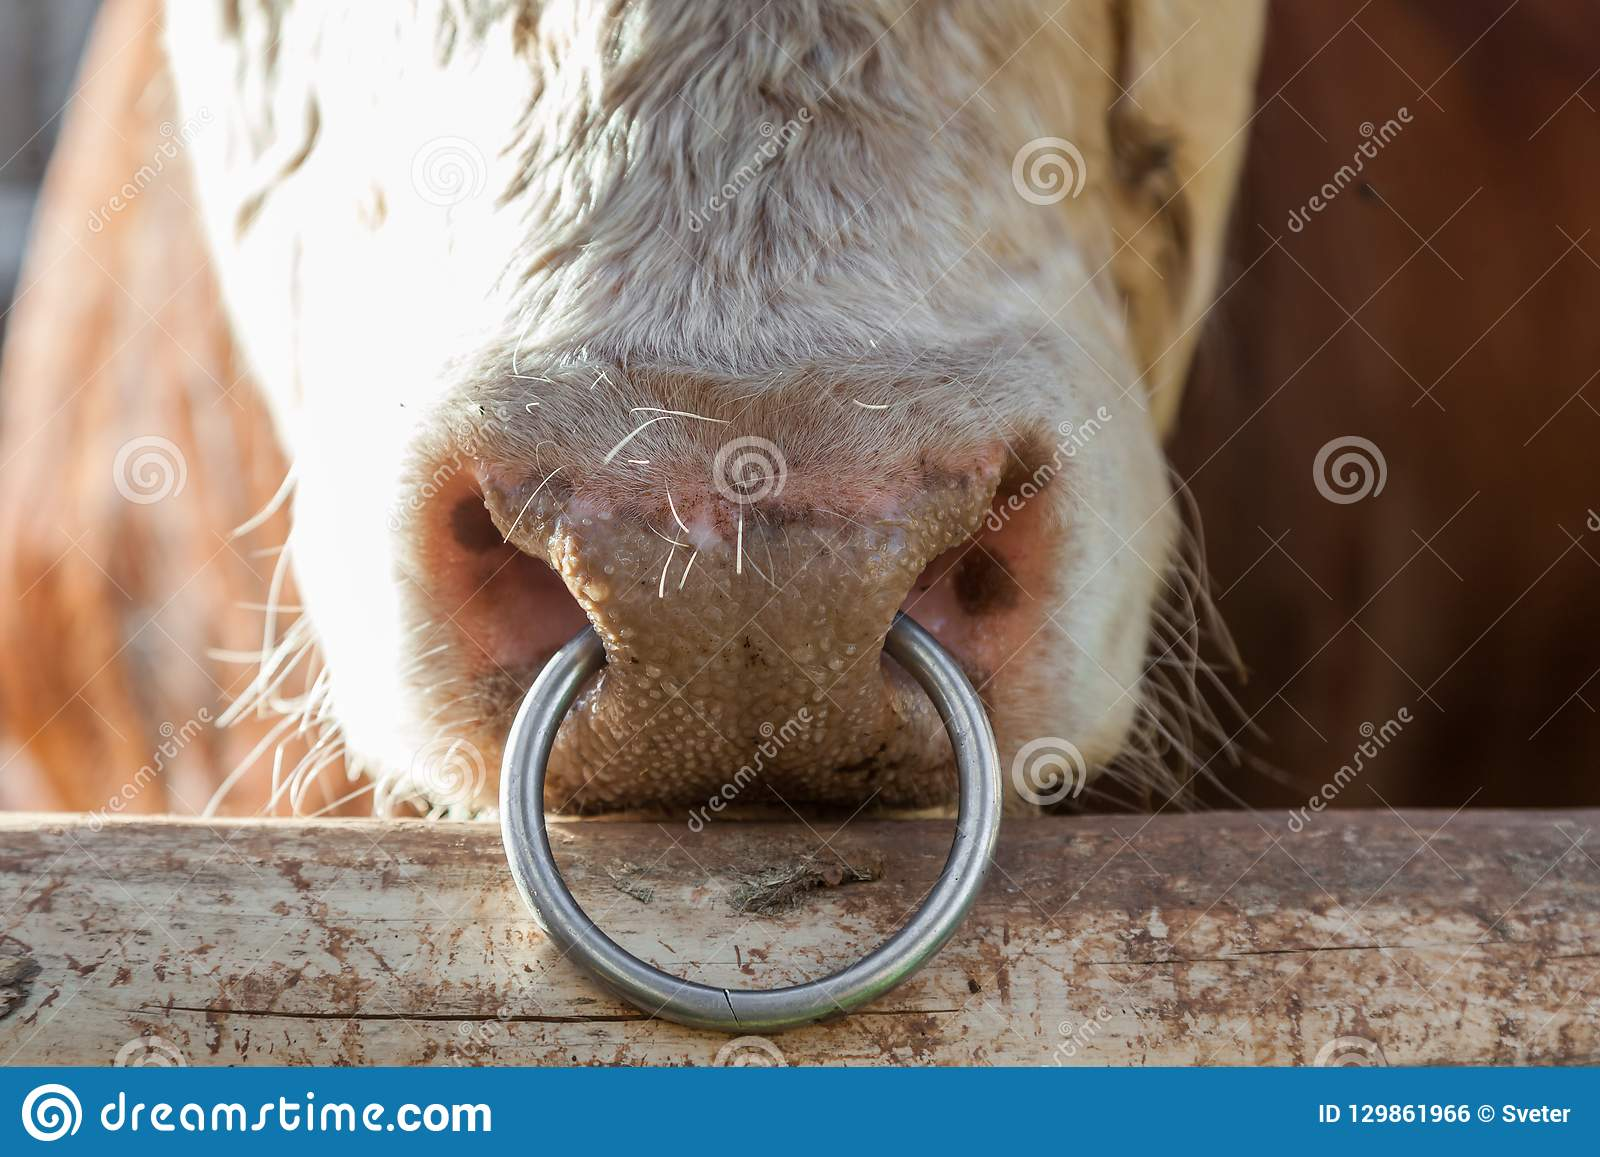 Big Bull With A Ring In A Nose Stock Photo Image Of Nose Rural